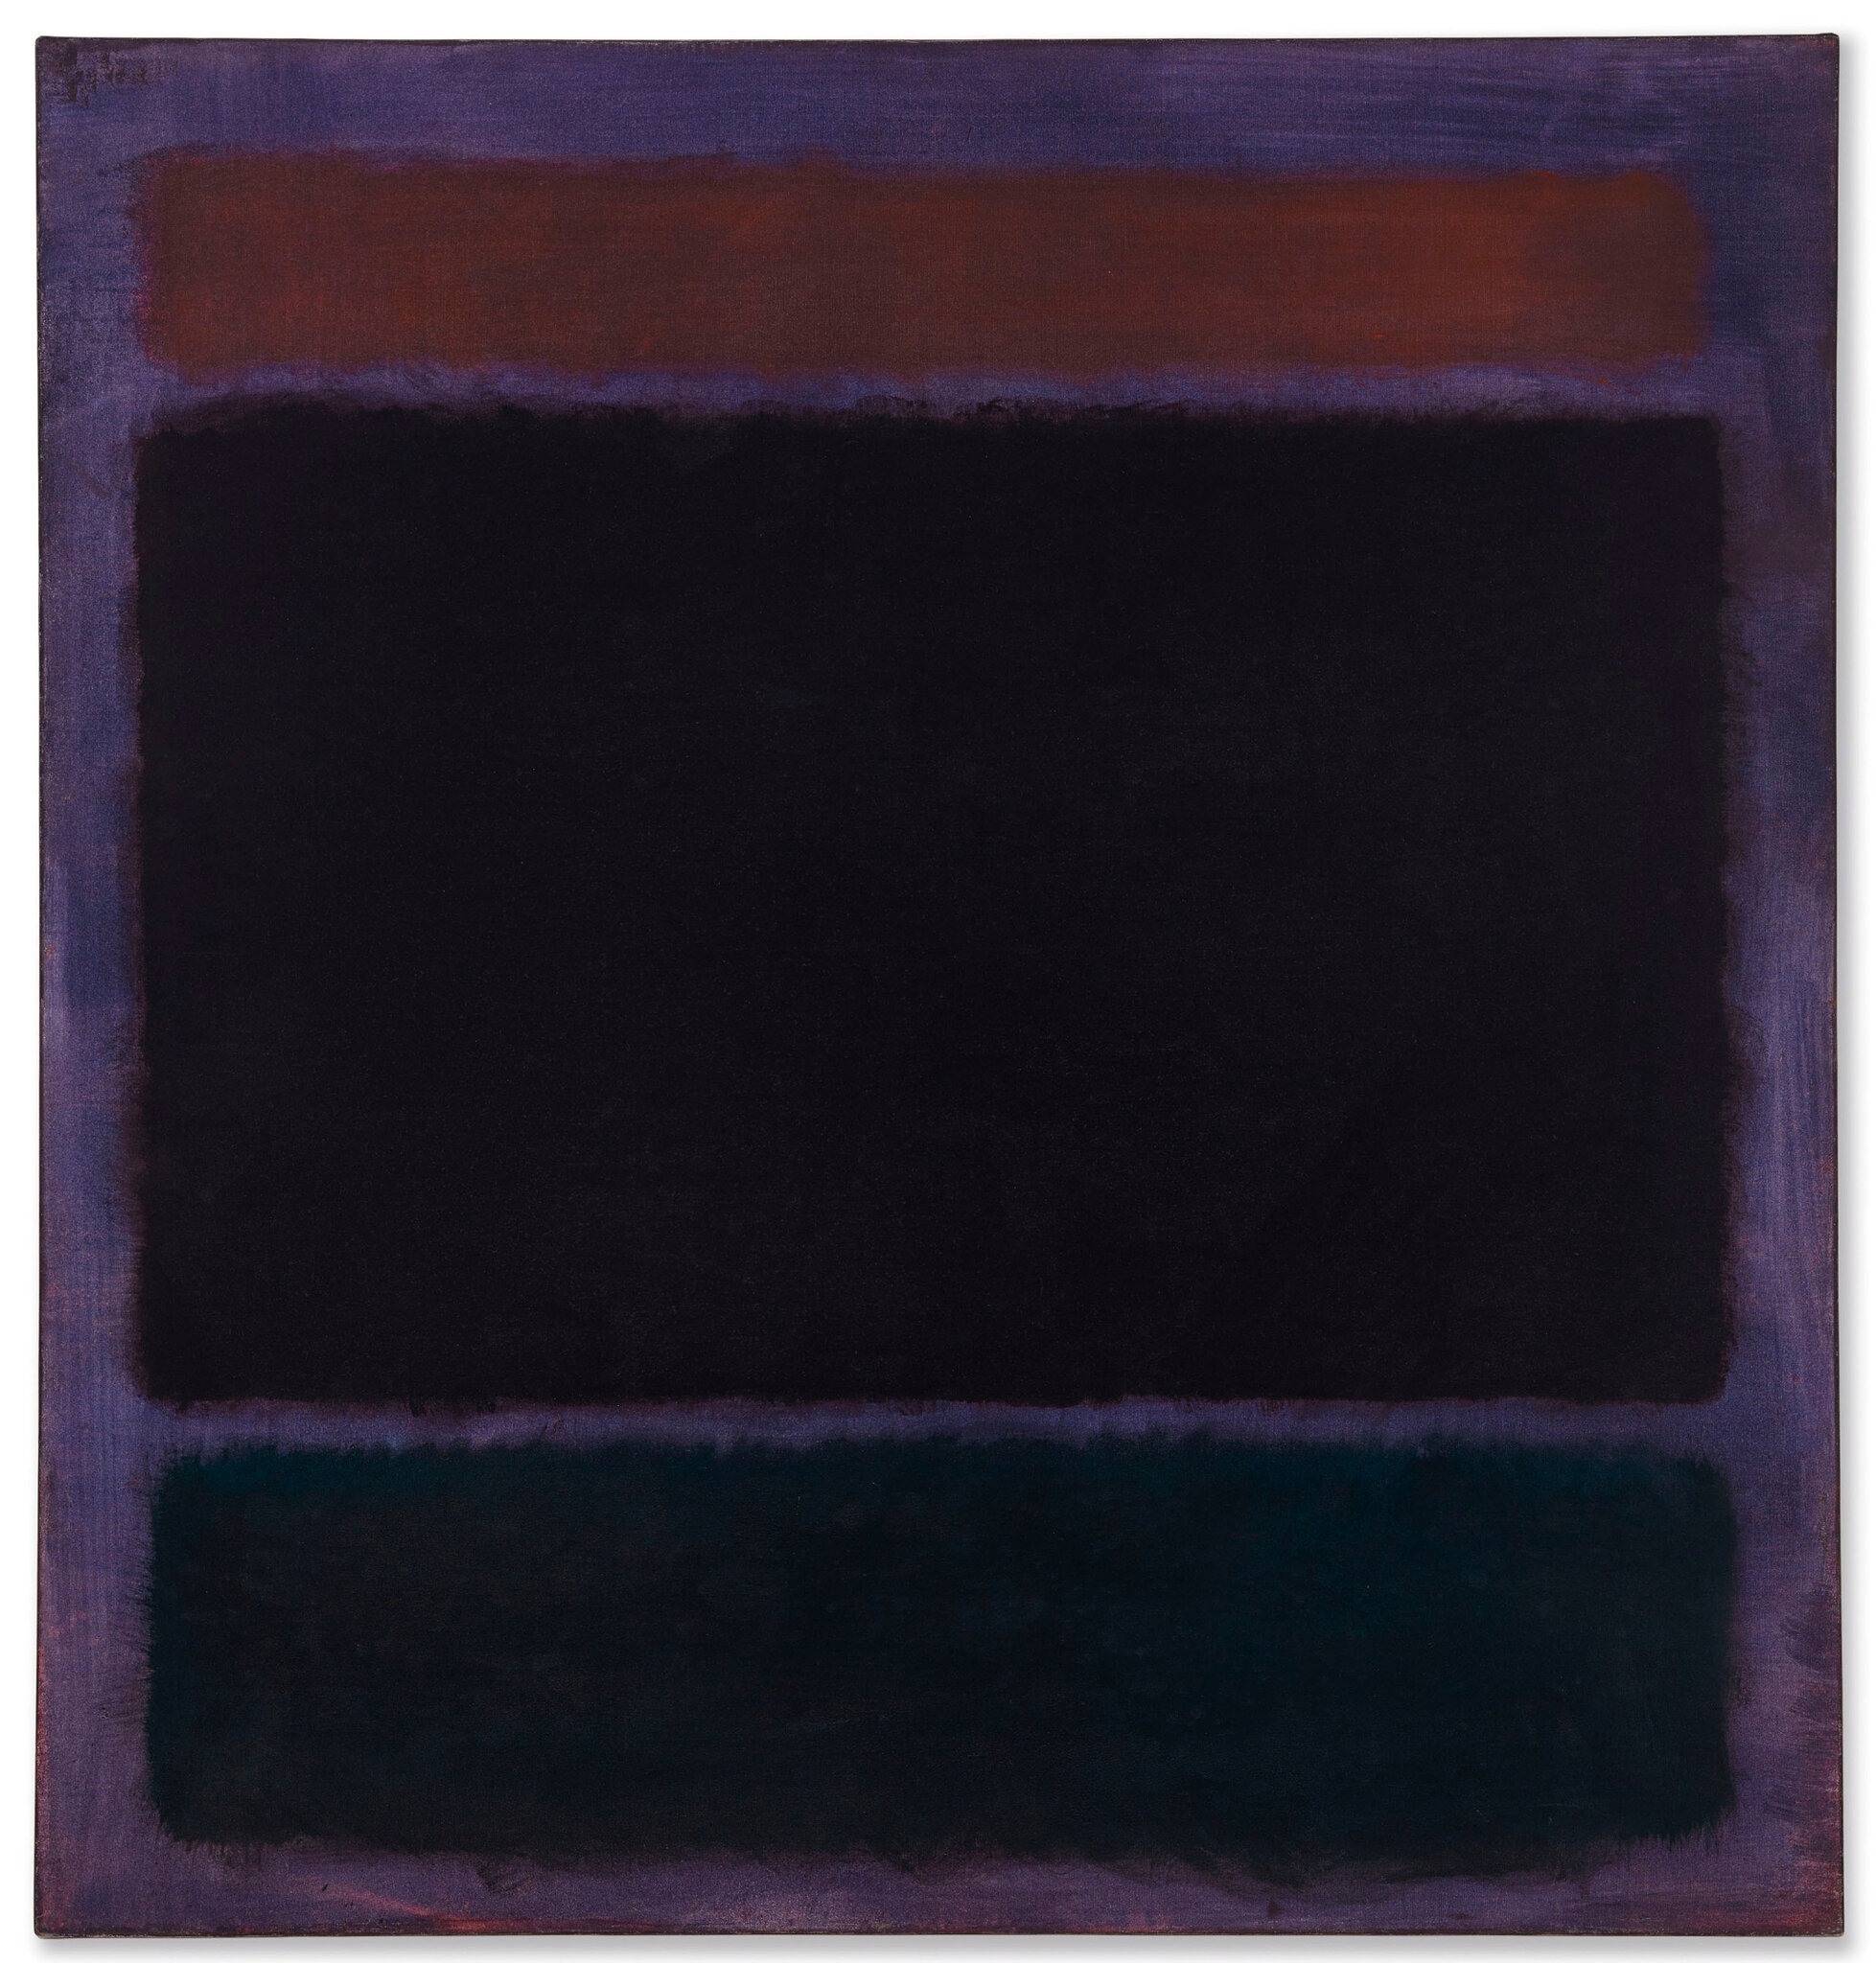 Tableau Moderne Vertical Mark Rothko 1903 1970 Untitled Rust Blacks On Plum Alain R